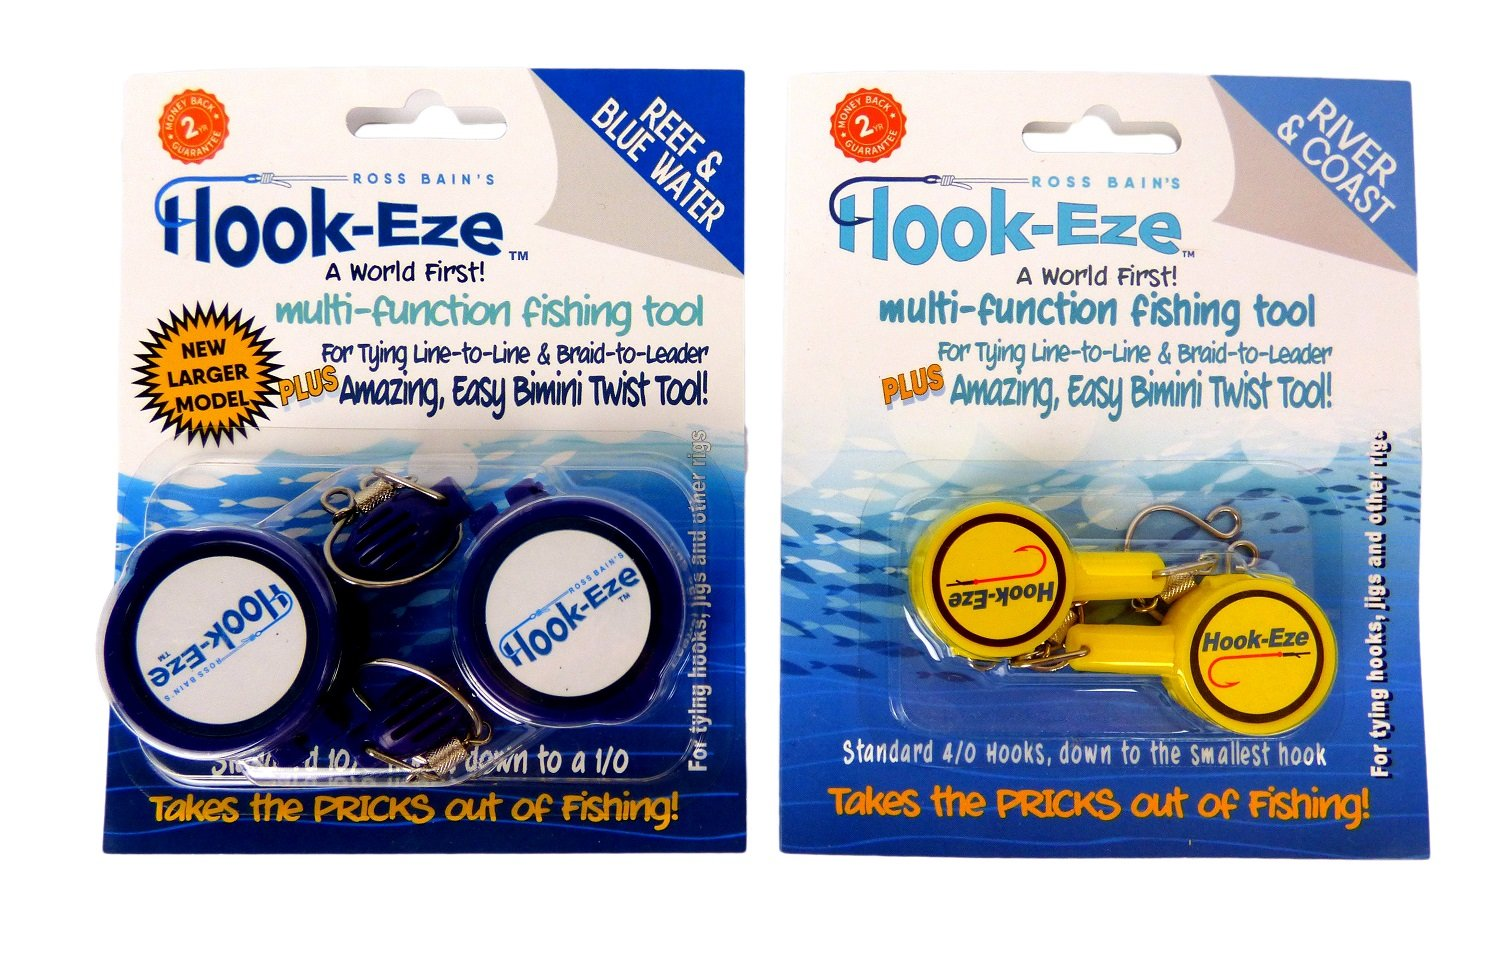 HOOK-EZE 2 x Twin Packs 1 x New Larger Model Reef & Blue Water + 1 x Original River & Coast Safe Fishing Hook Cover & Knot Tying Tool (Lg Blue + Yellow) by HOOK-EZE (Image #1)